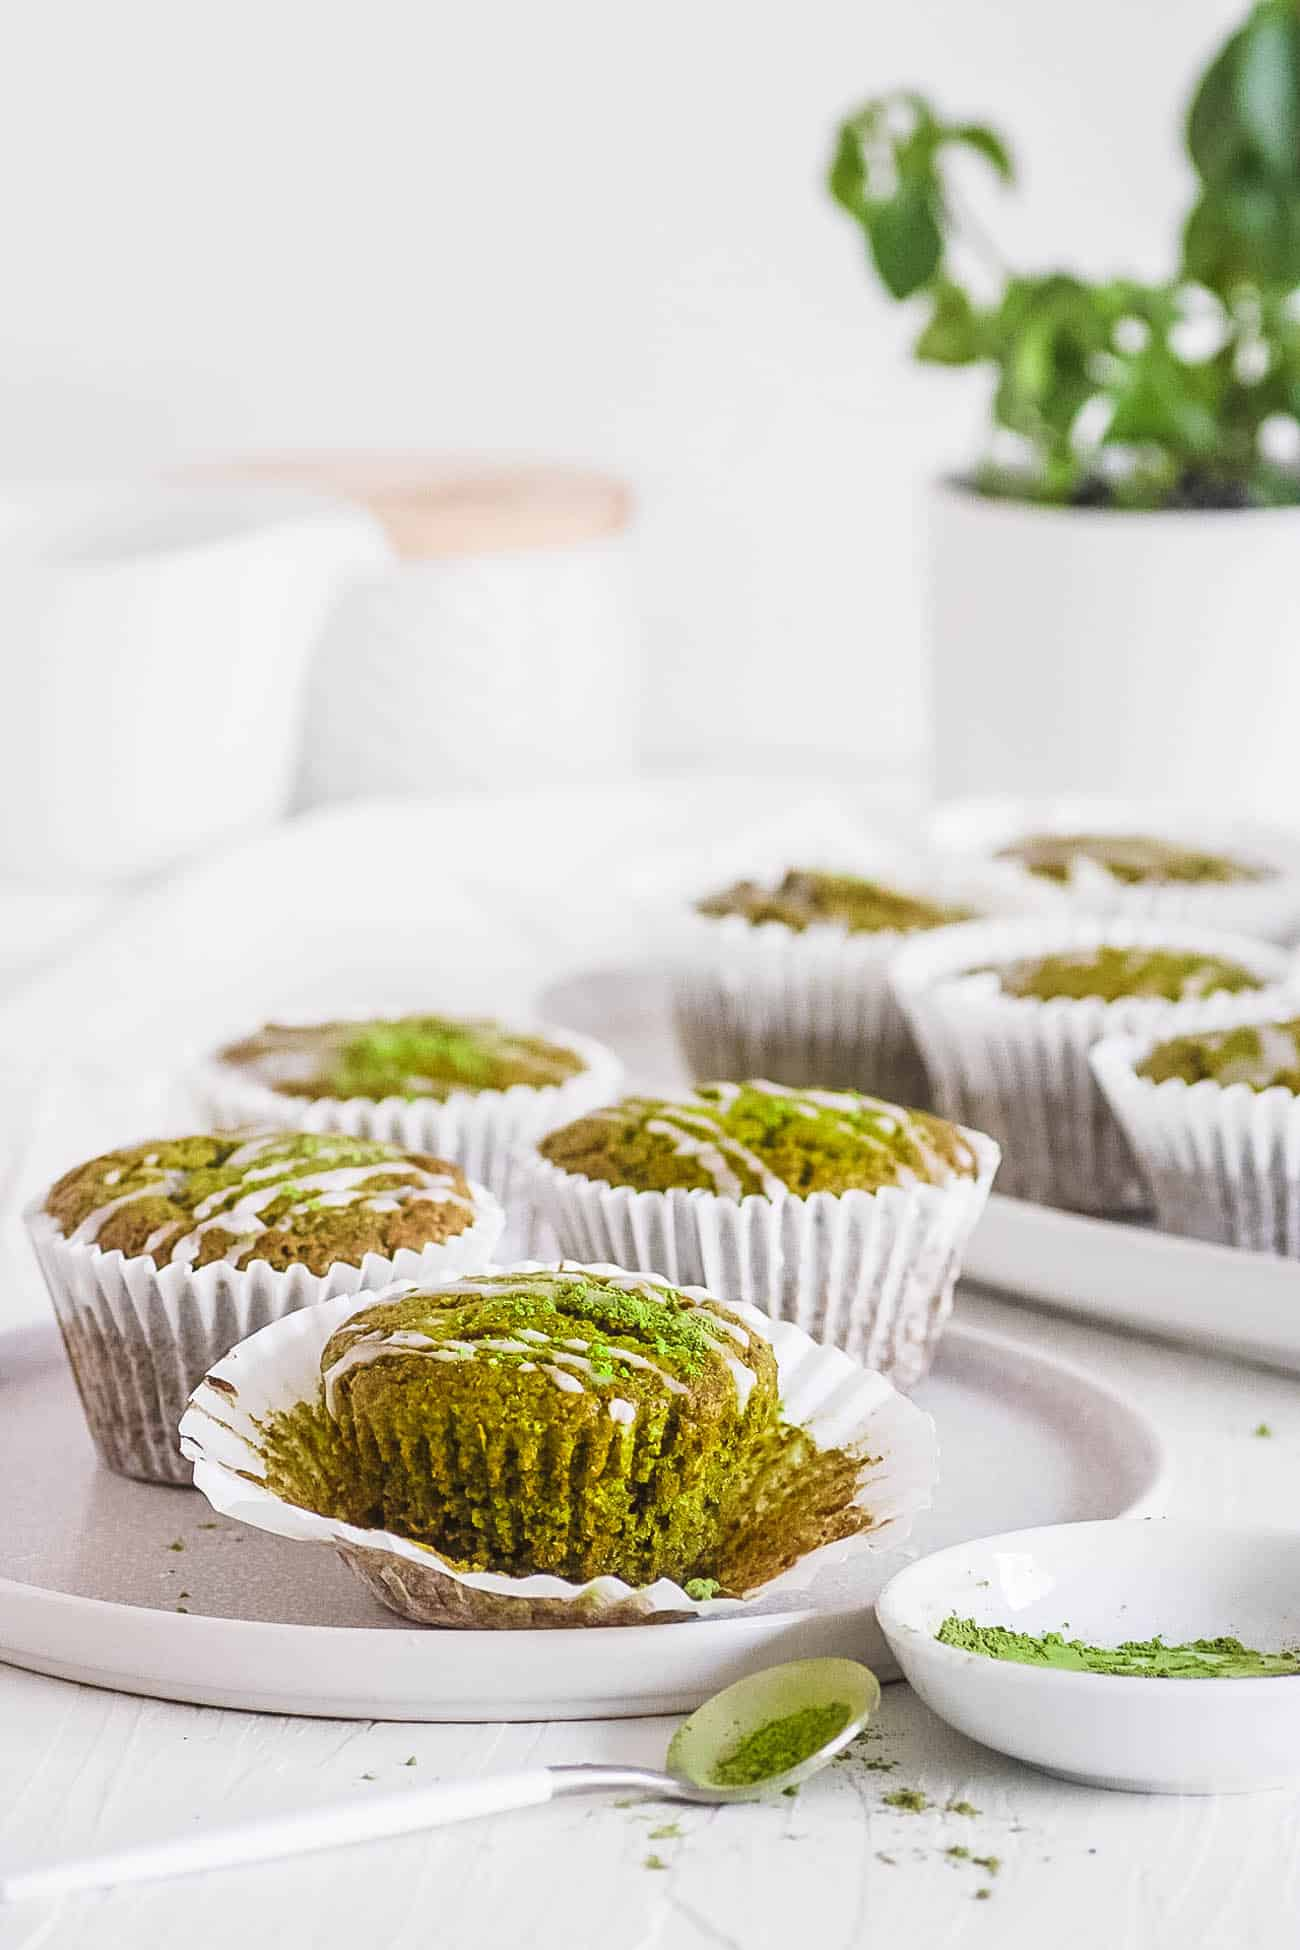 easy healthy matcha muffins recipe on a white plate with lemon frosting